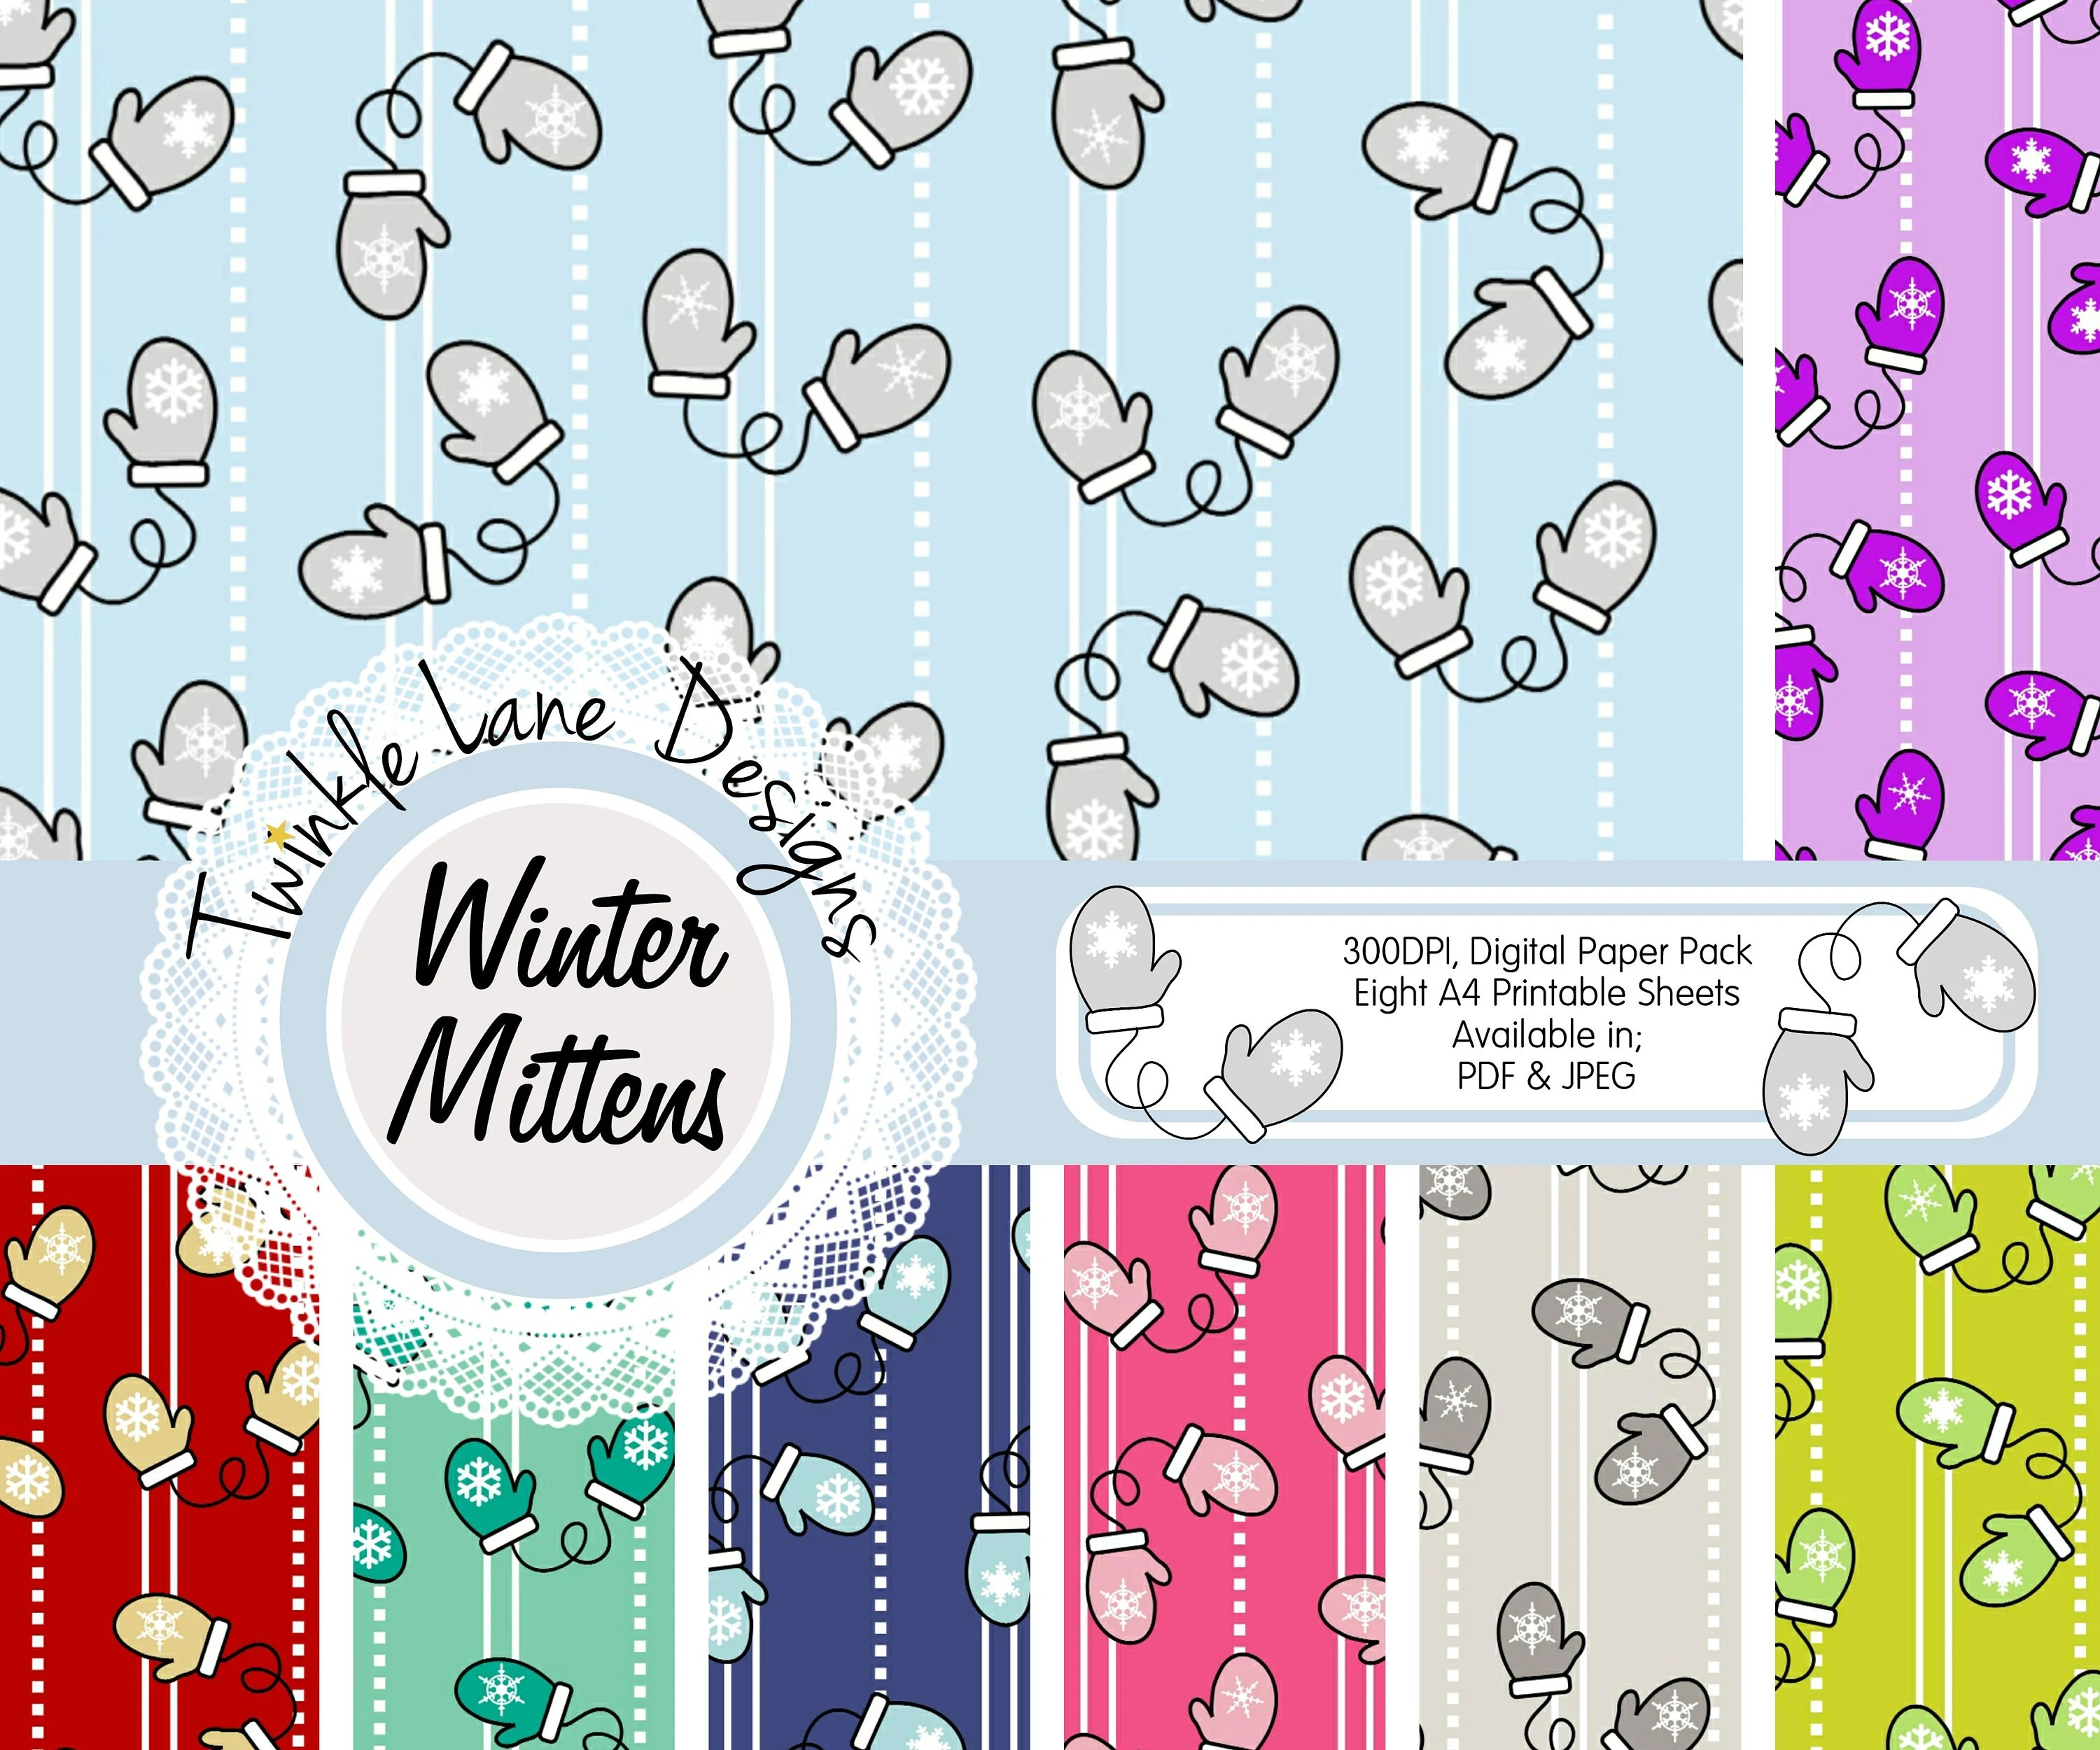 Winter Gloves Festive Paper Pack Xmas Digital Paper